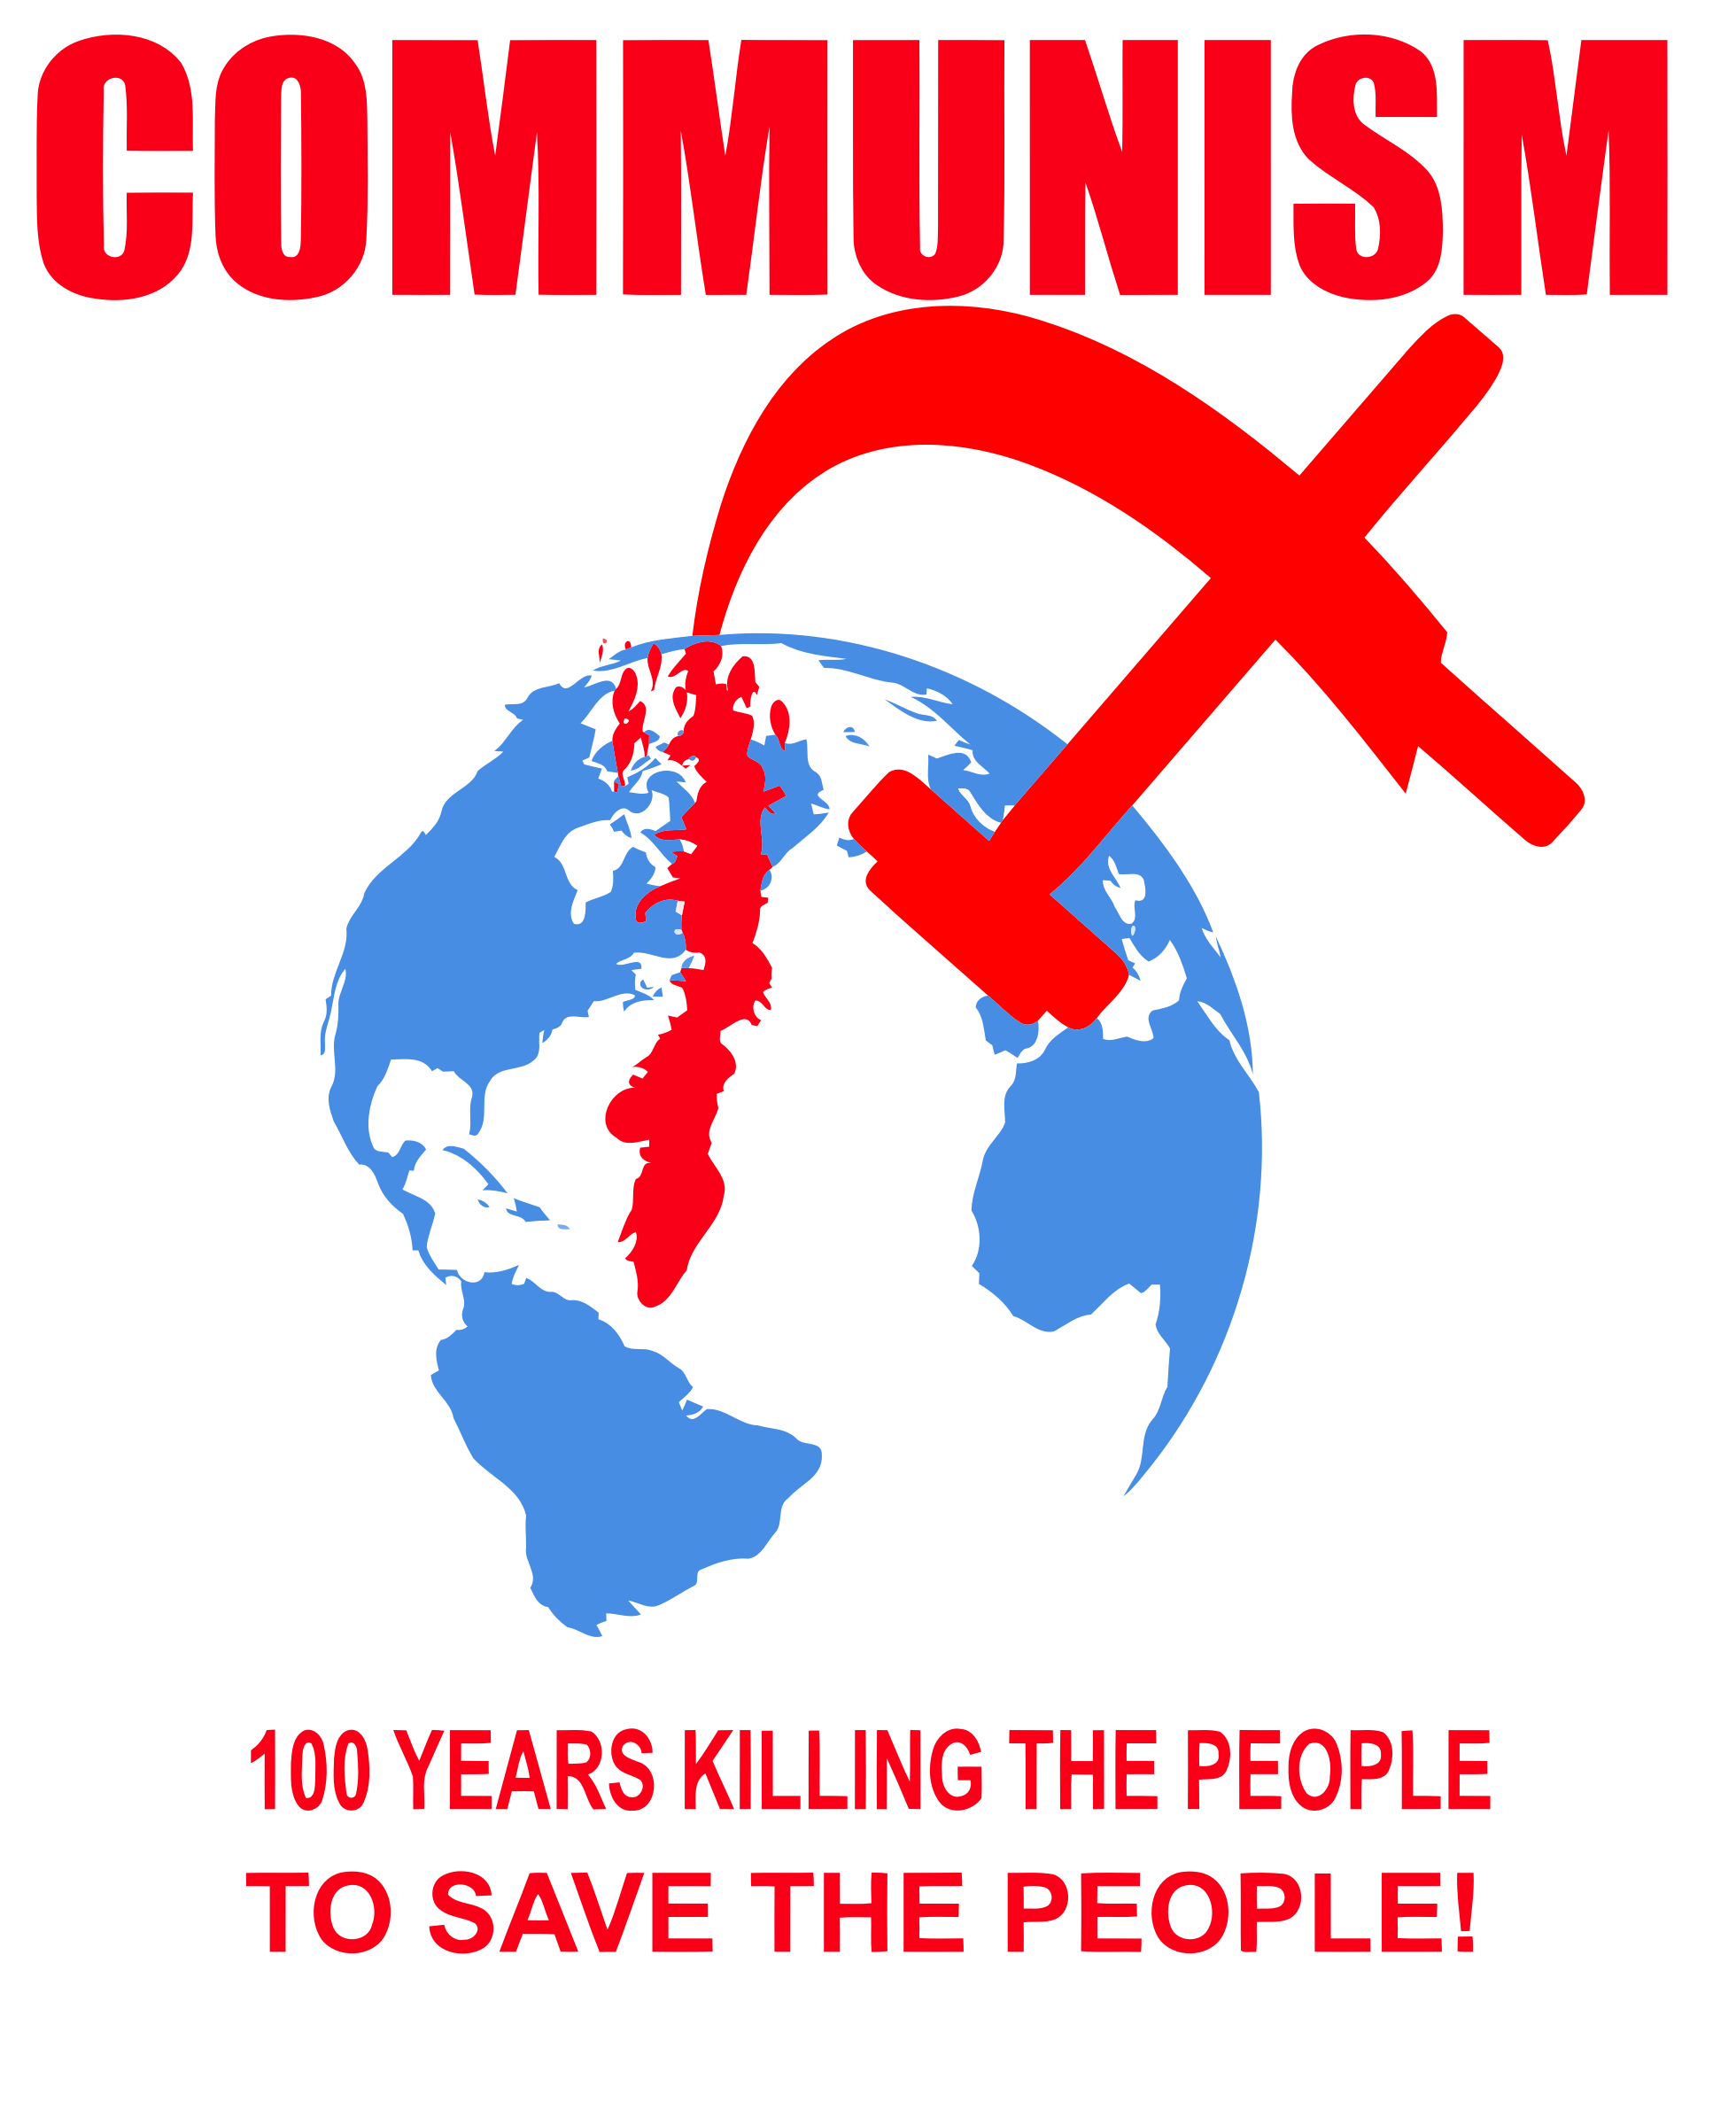 100 years killing the people, to save the people! by MUVUCA